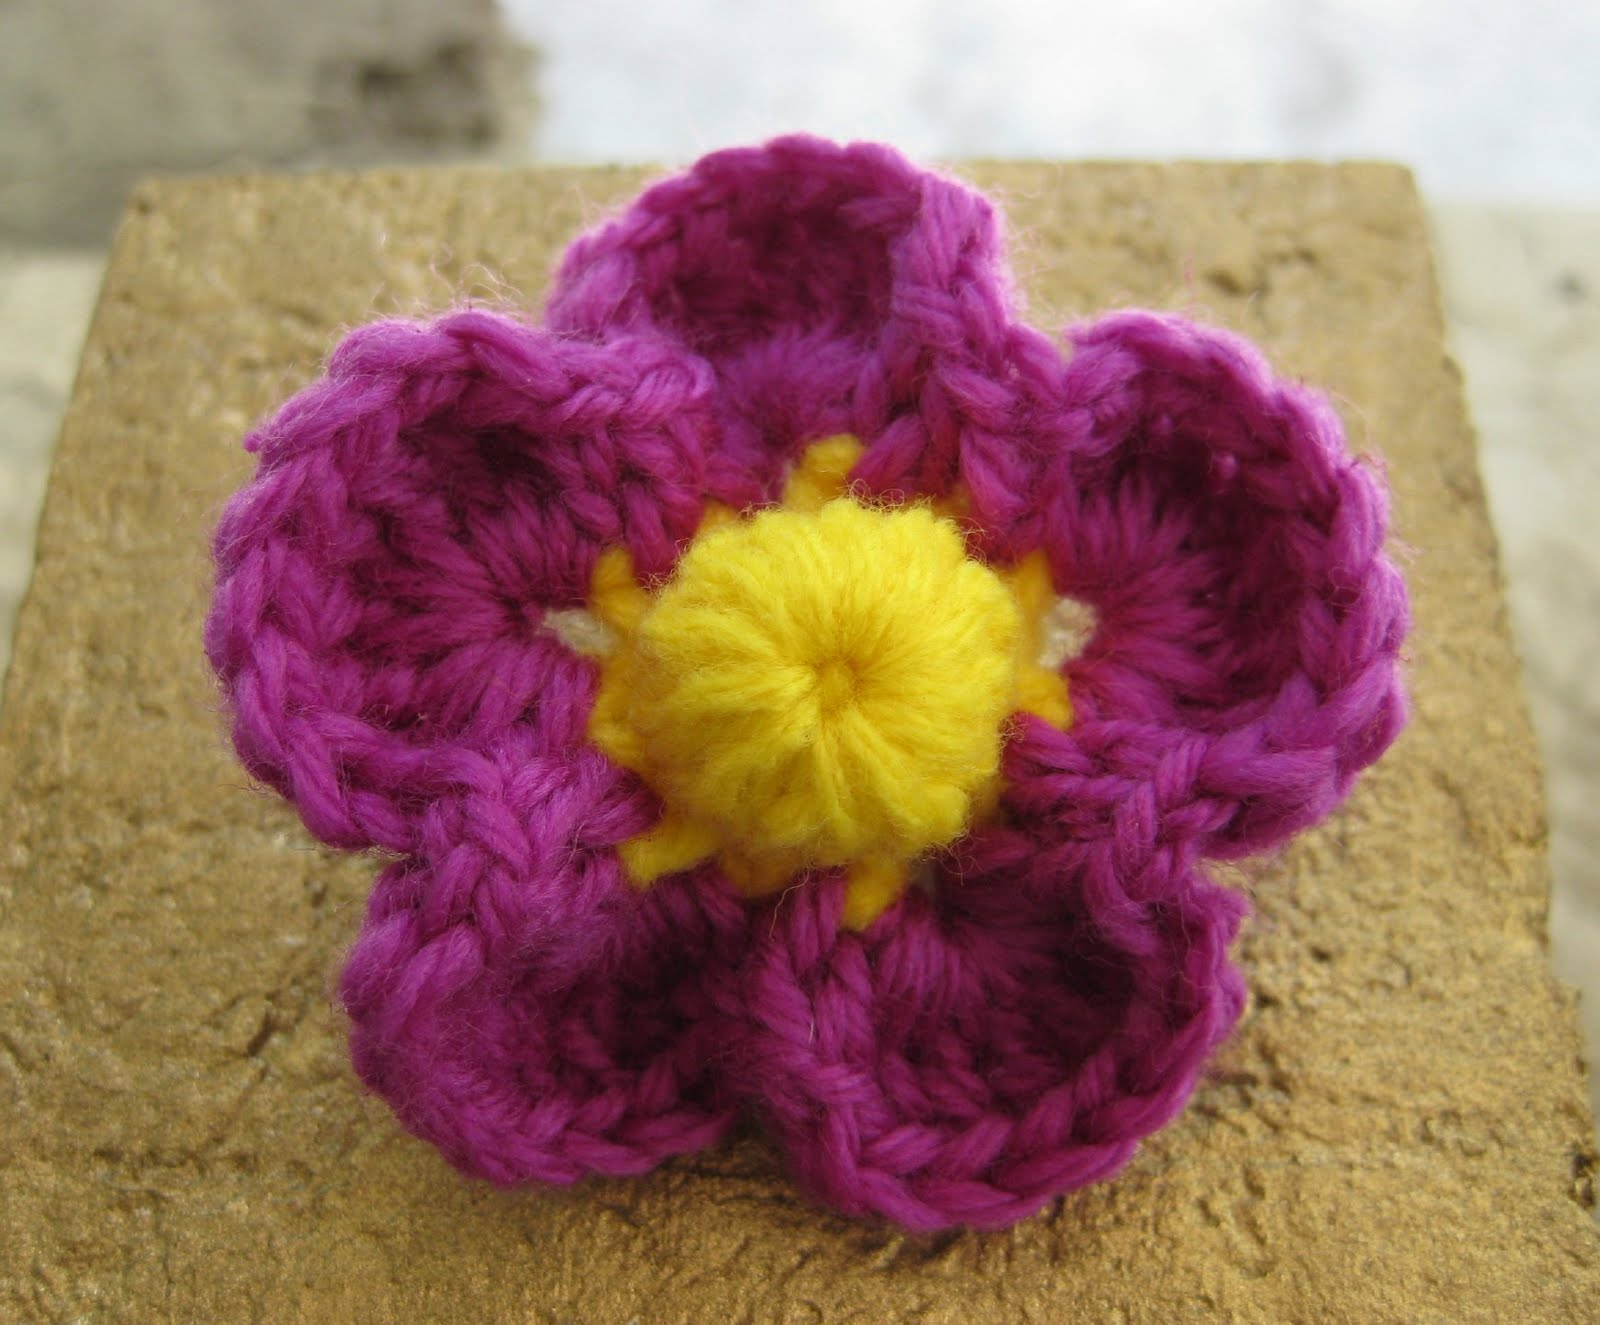 Crocheting Directions : FREE CROCHET PATTERNS AND INSTRUCTIONS Crochet Tutorials